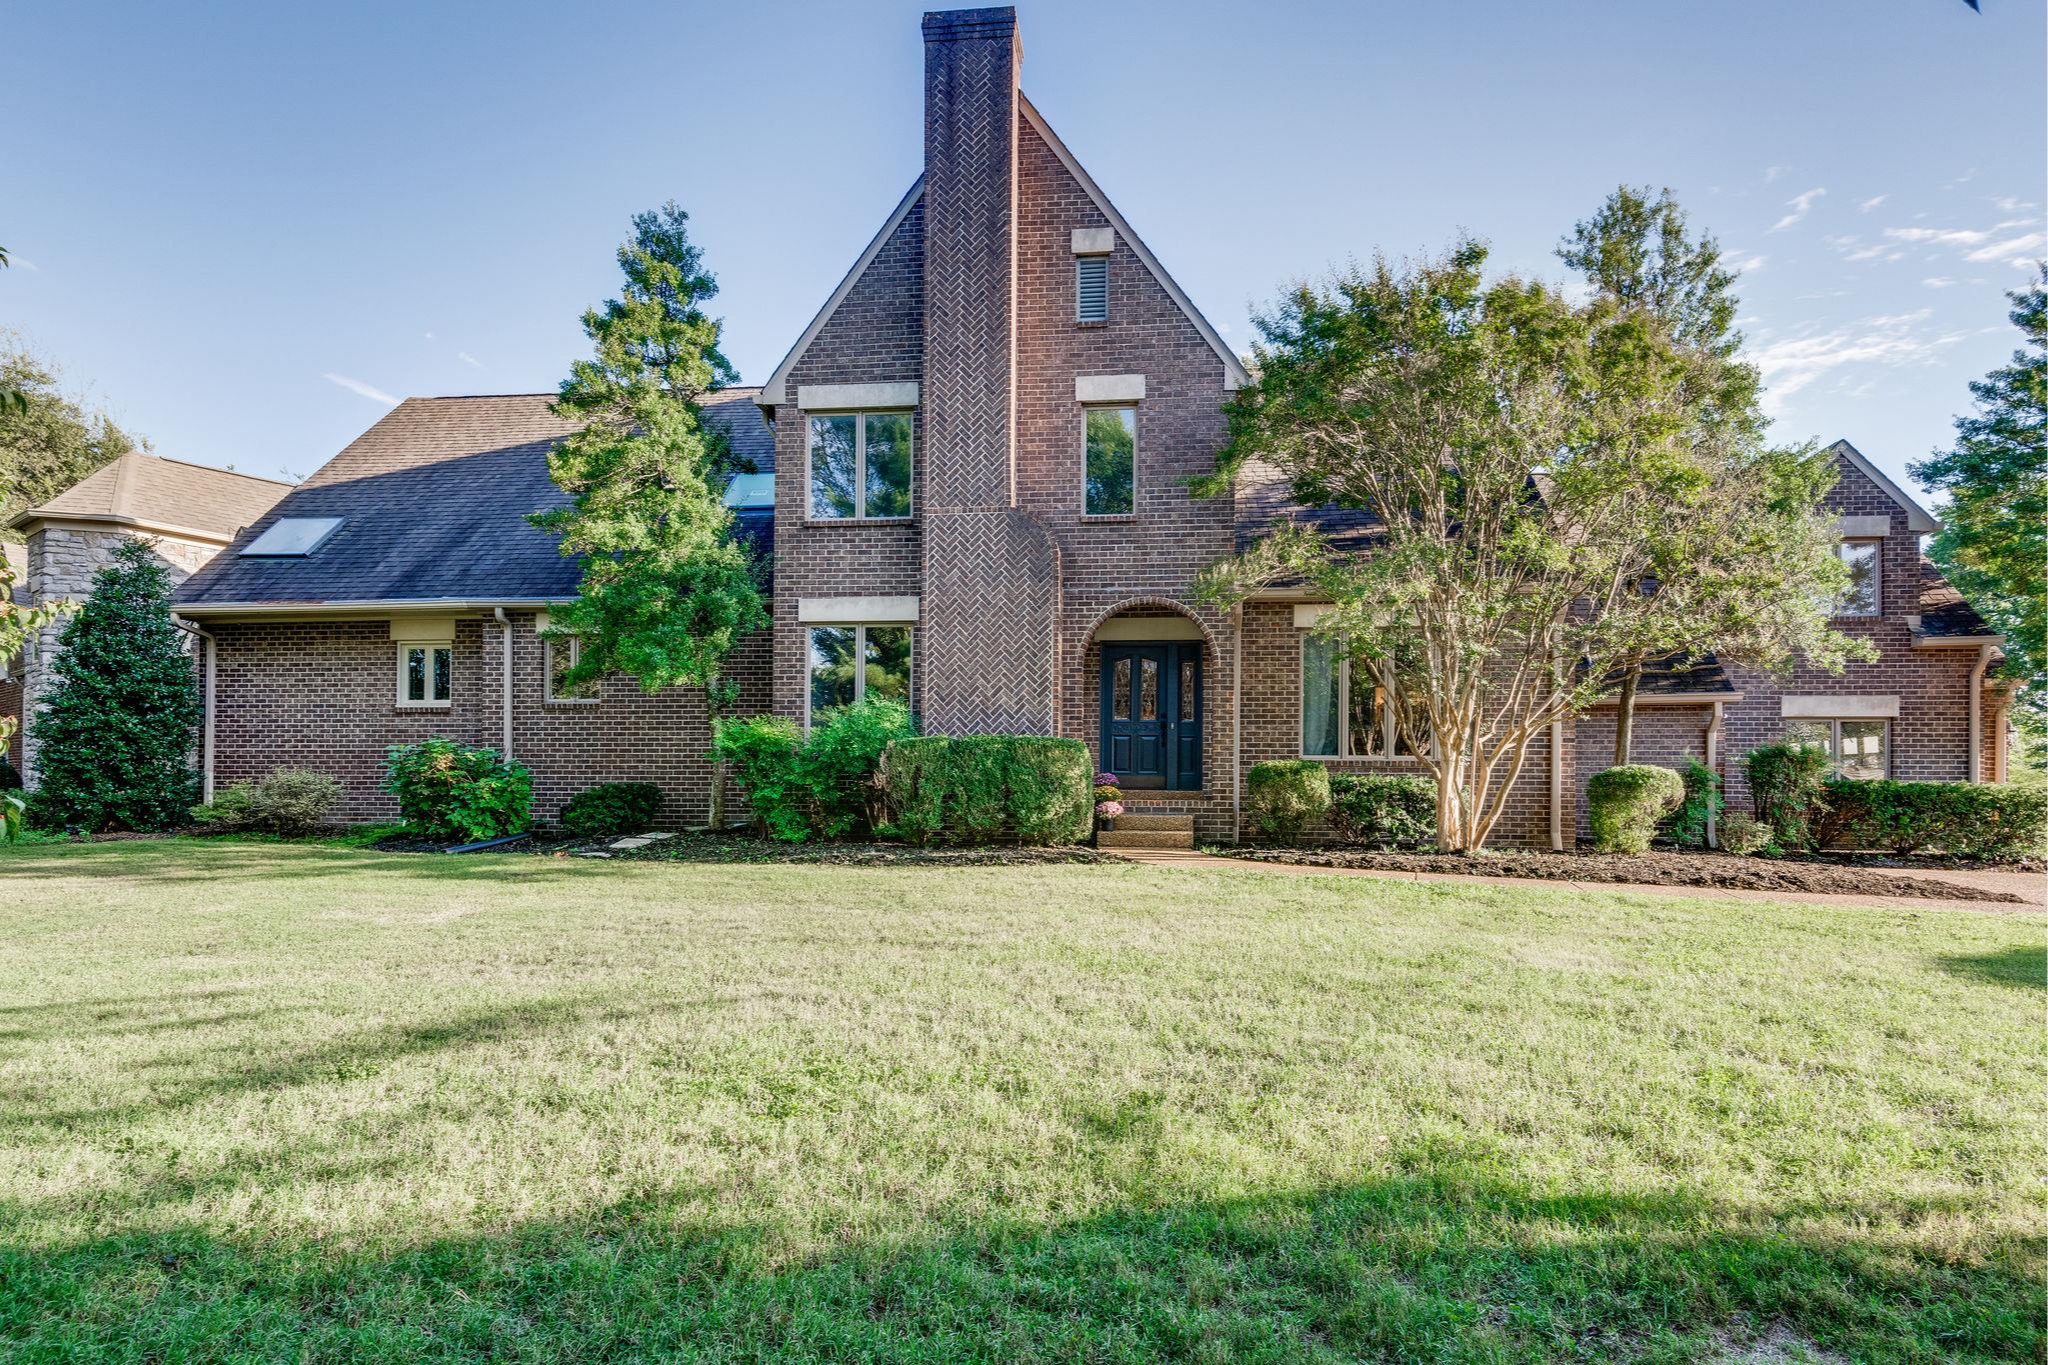 1817 Woodmont Blvd, Nashville, TN   PURCHASED PRICE $750,000  3 BED · 2.5 BATHs · 3489 SQF